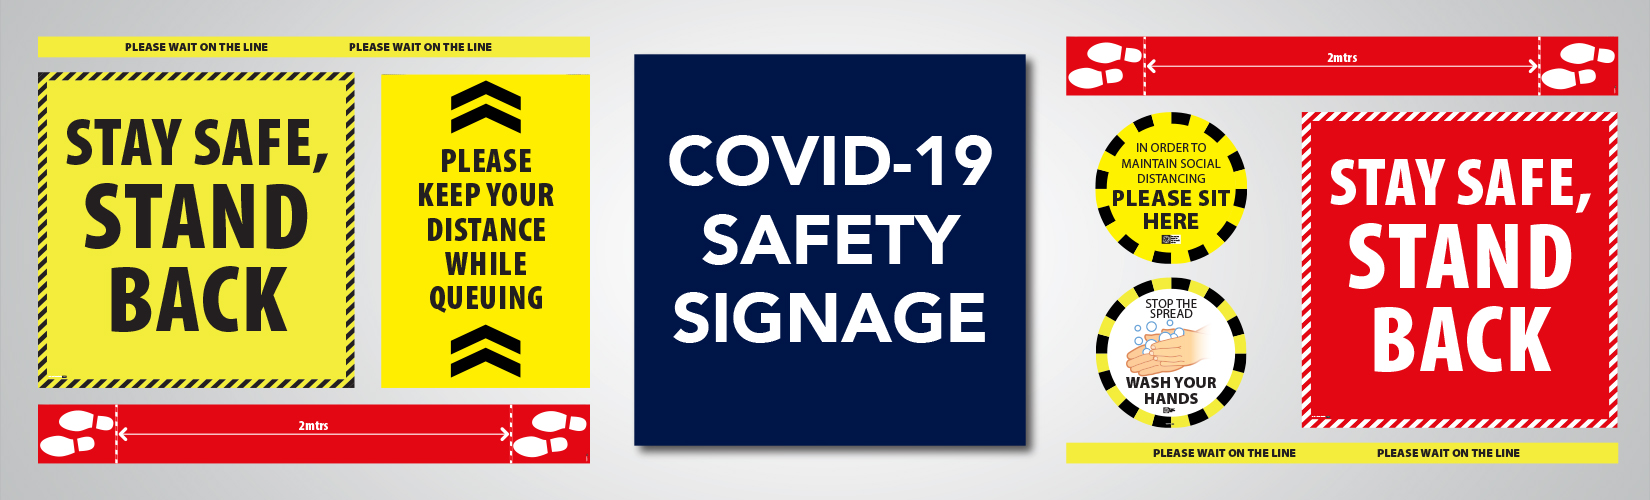 Covid 19 Safety Signage Service